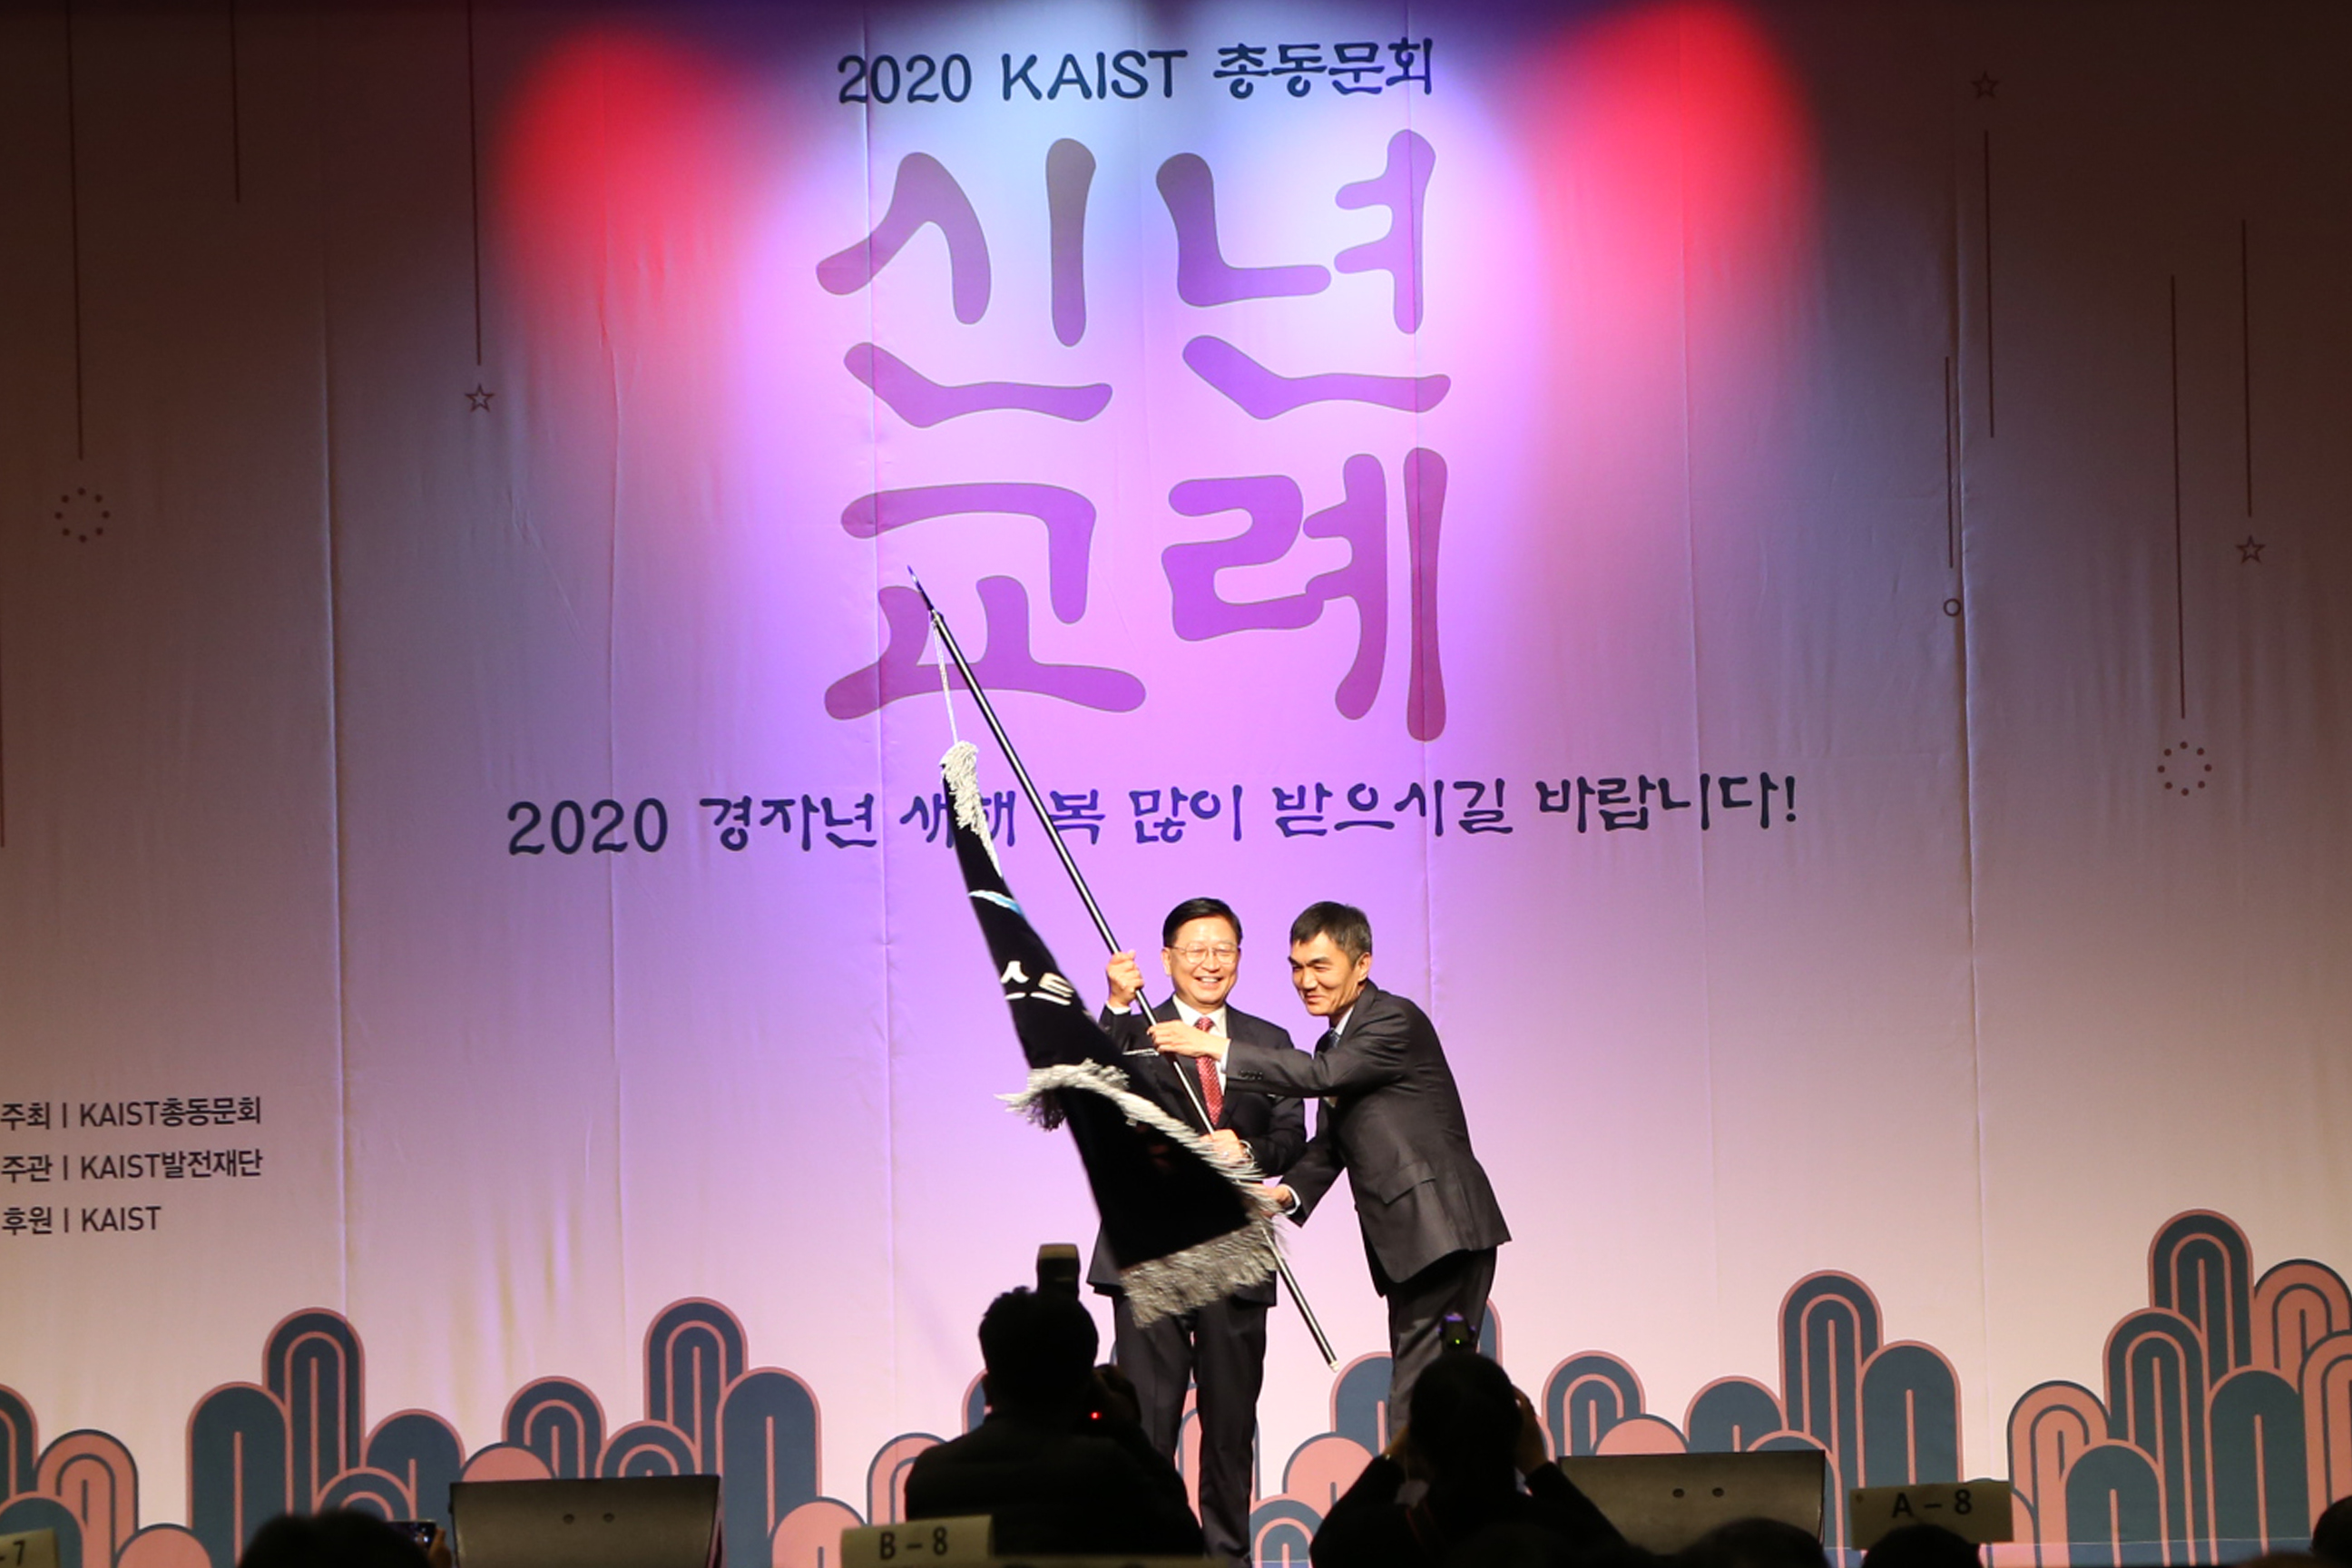 The new president Chilhee Chung (left) and the former president Ki-Chul Cha (right)